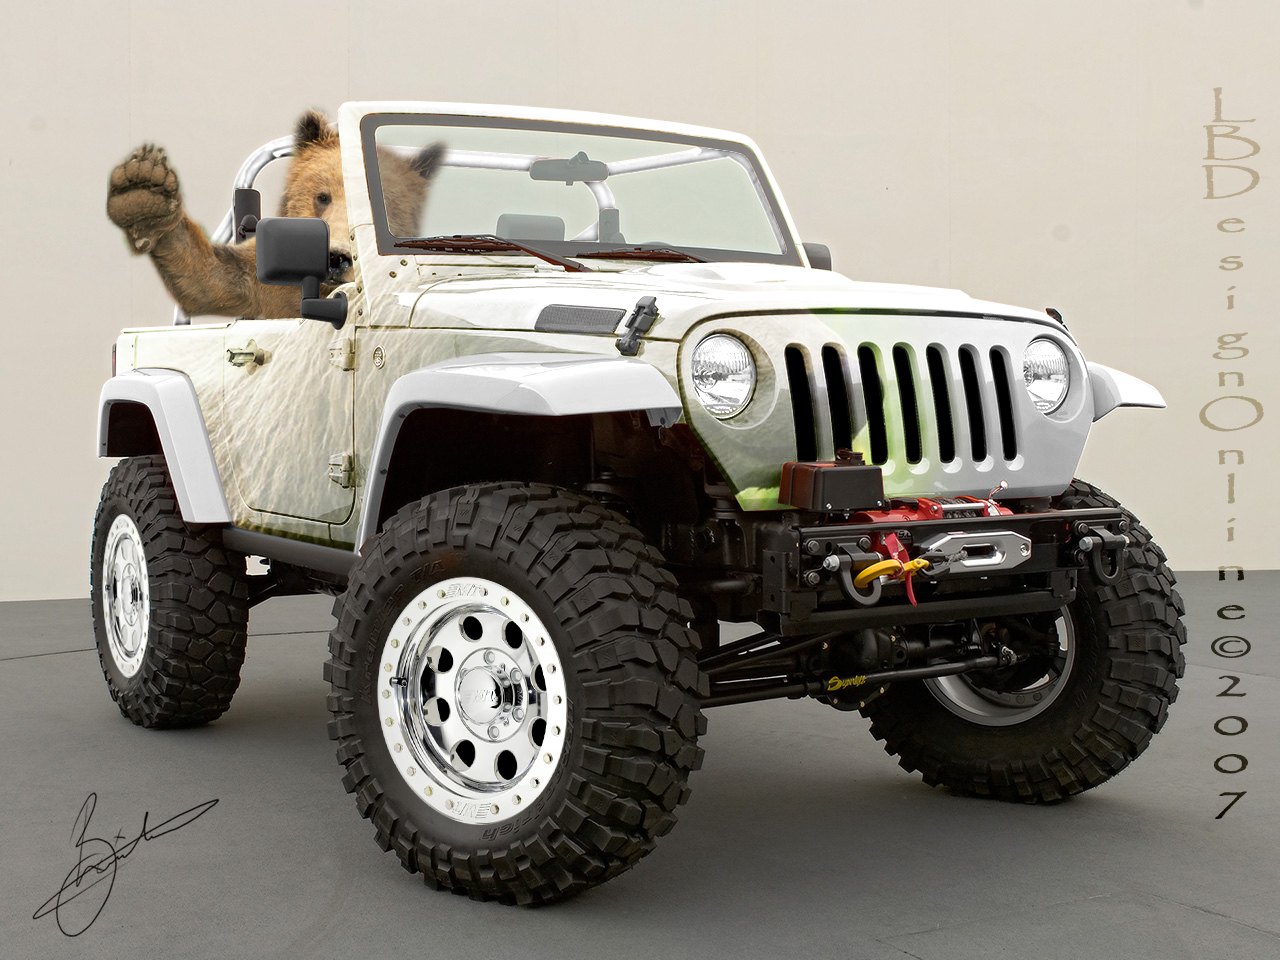 jeep wallpaper 3 you are viewing the jeep wallpaper named jeep 3 it 1280x960